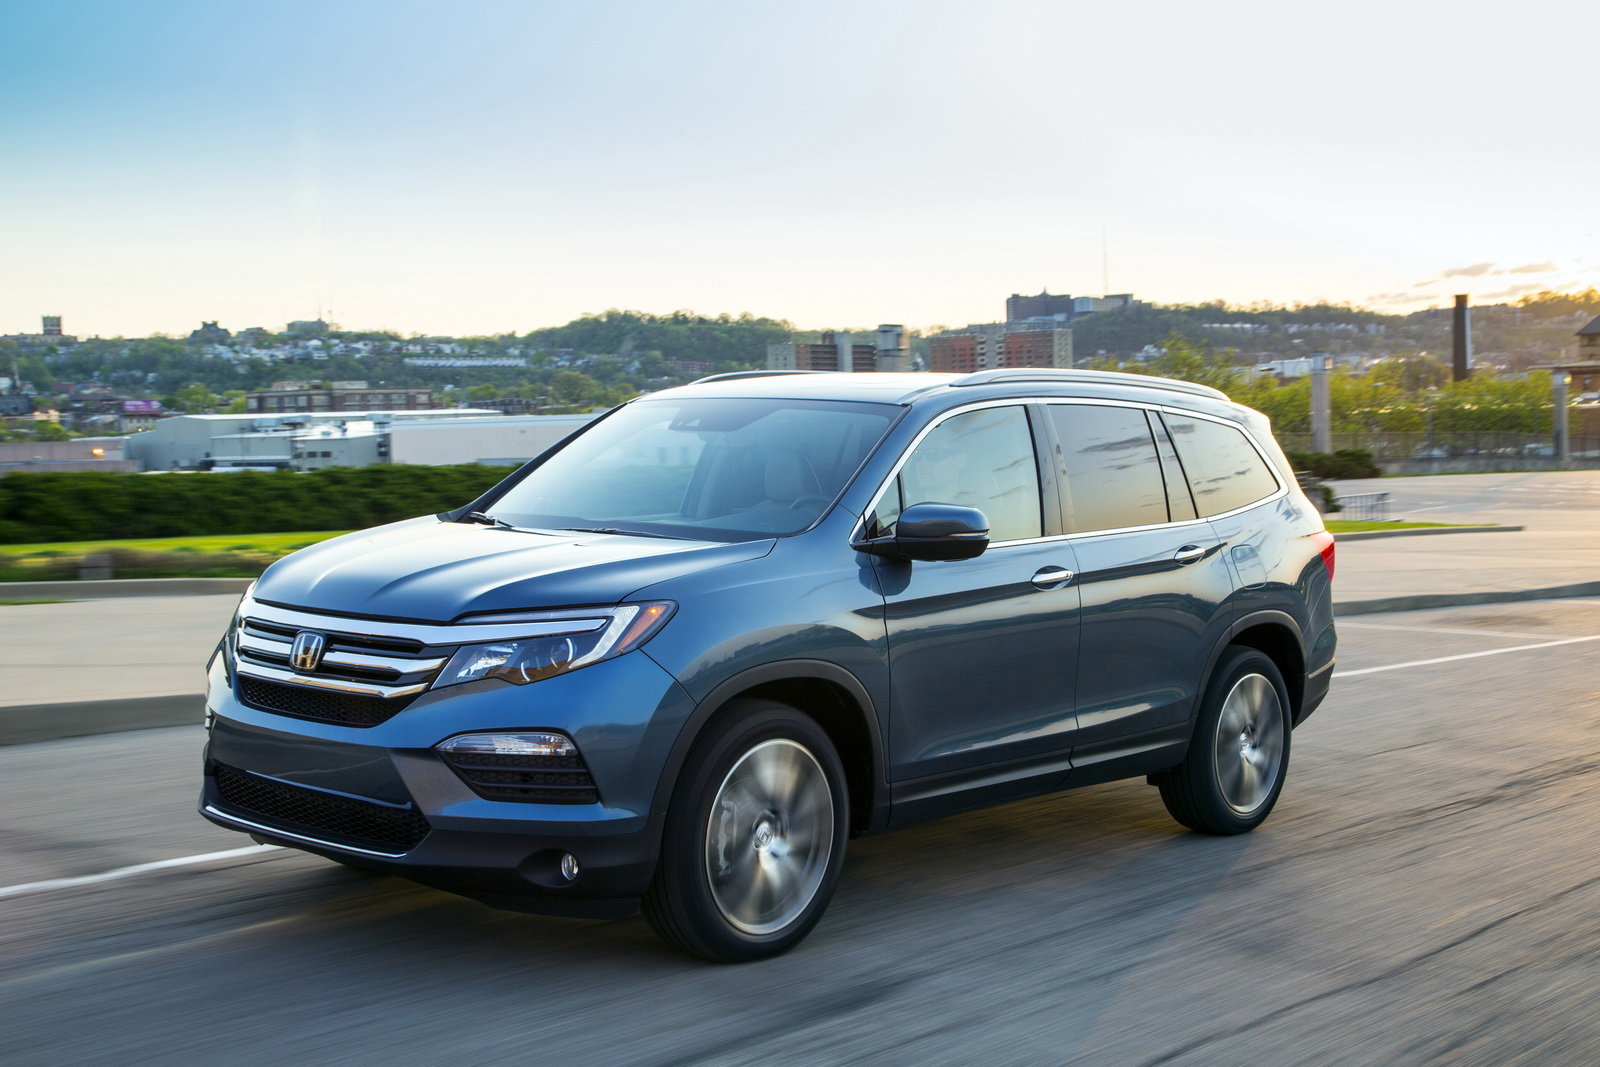 2017 honda pilot available now with apple carplay android auto priced from 30 595. Black Bedroom Furniture Sets. Home Design Ideas